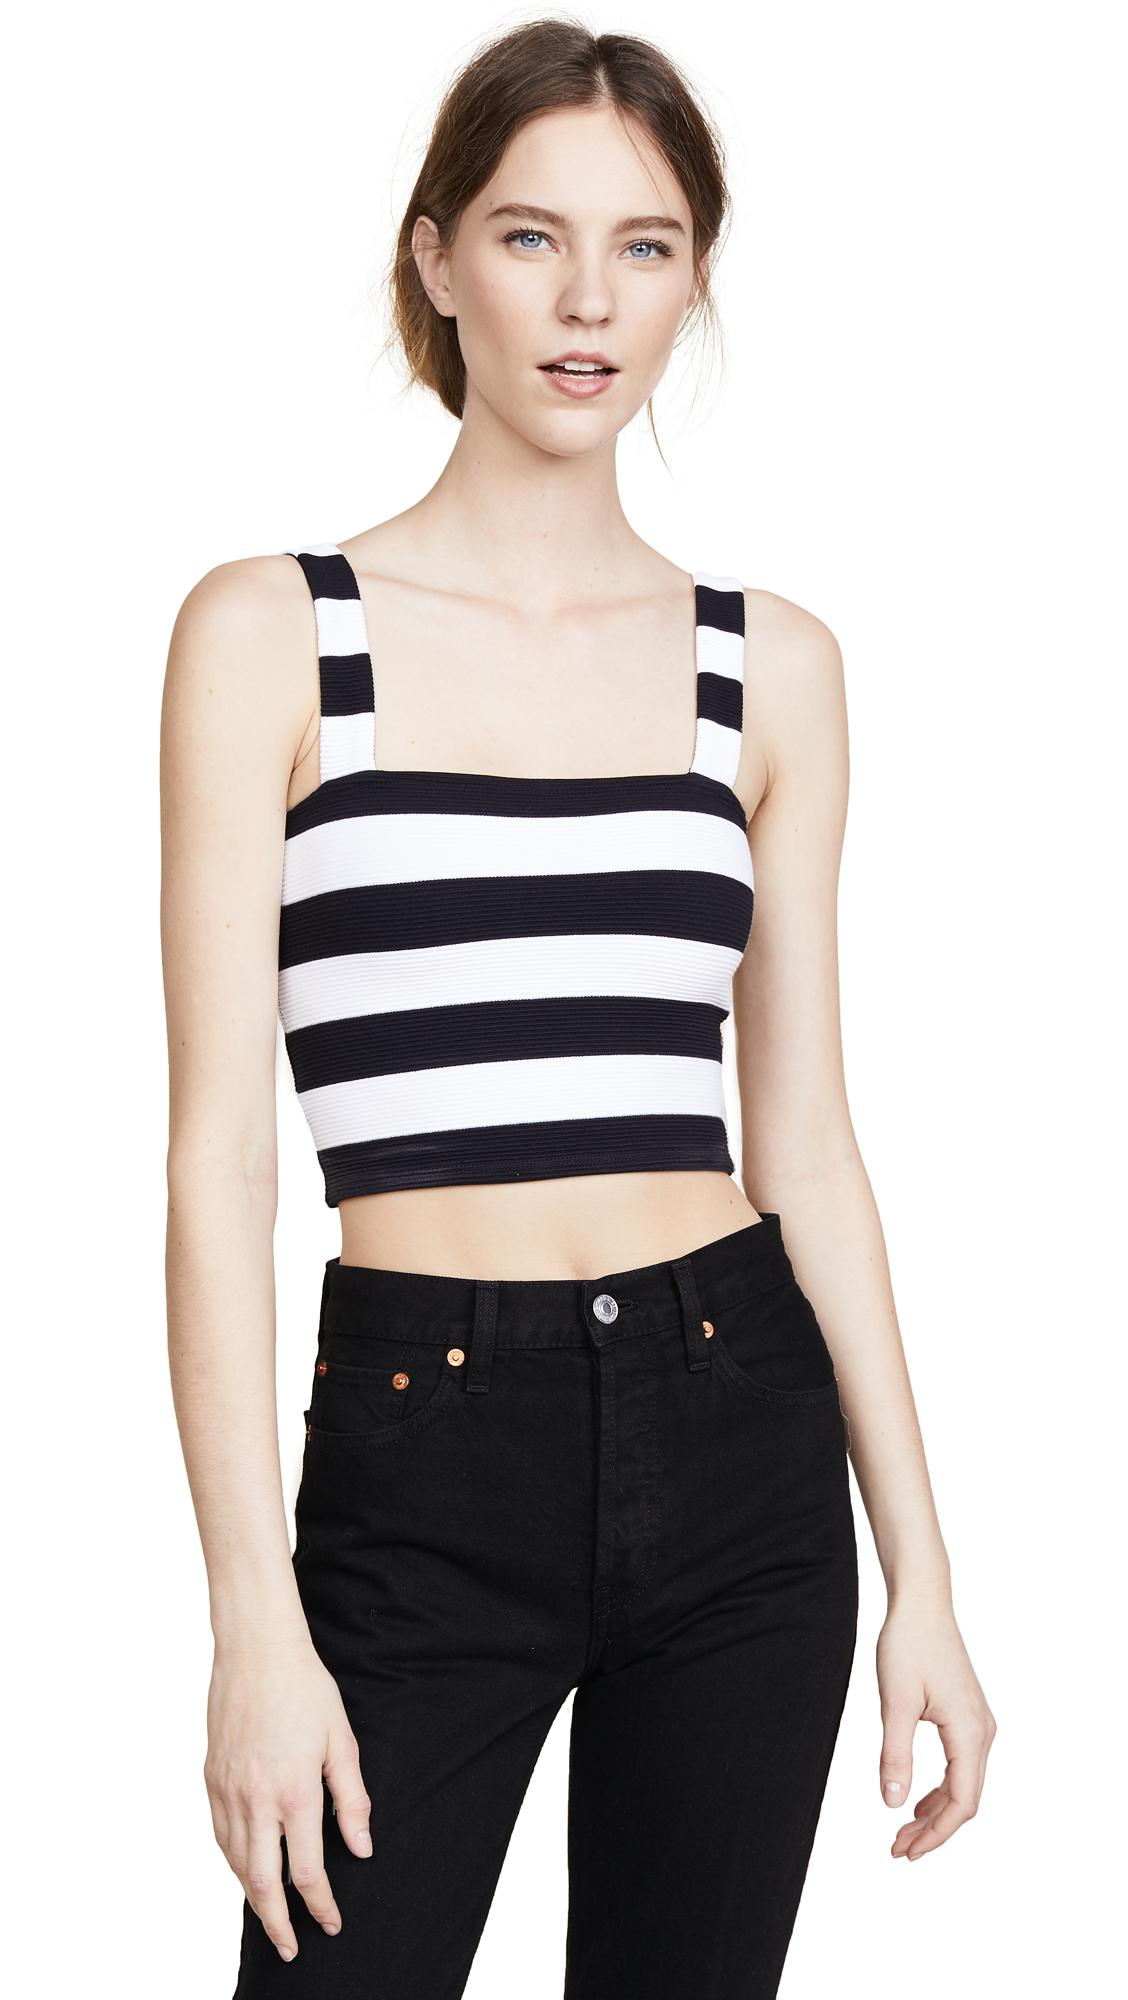 5208e70dcd3 The Range Jailhouse Stripe Crop Top In Black/White | ModeSens